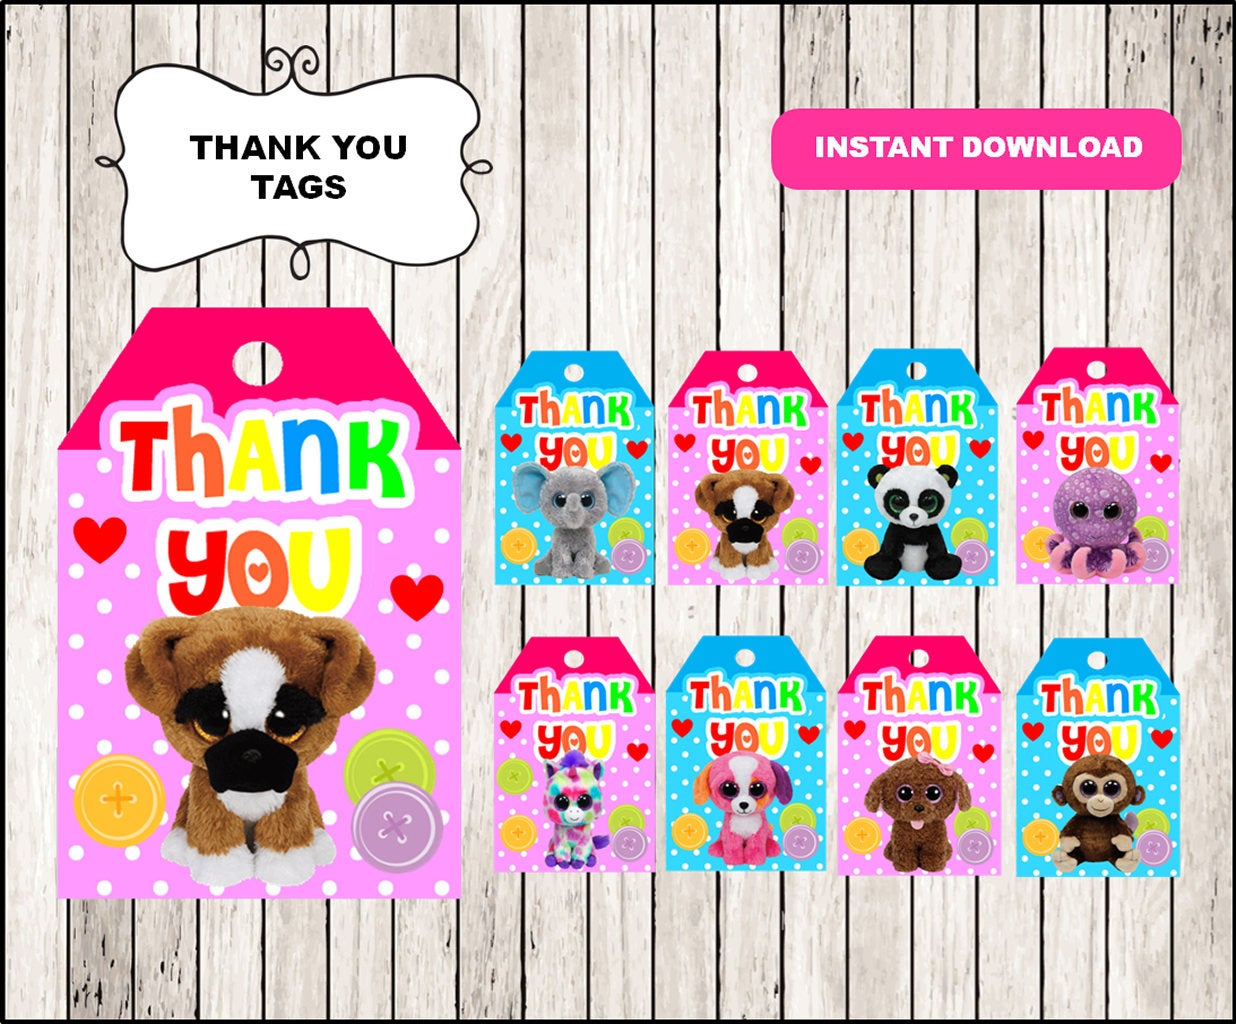 Beanie Boo thank you tags instant download, Printable Beanie Boo party  thank you tags, Beanie Boo tags.